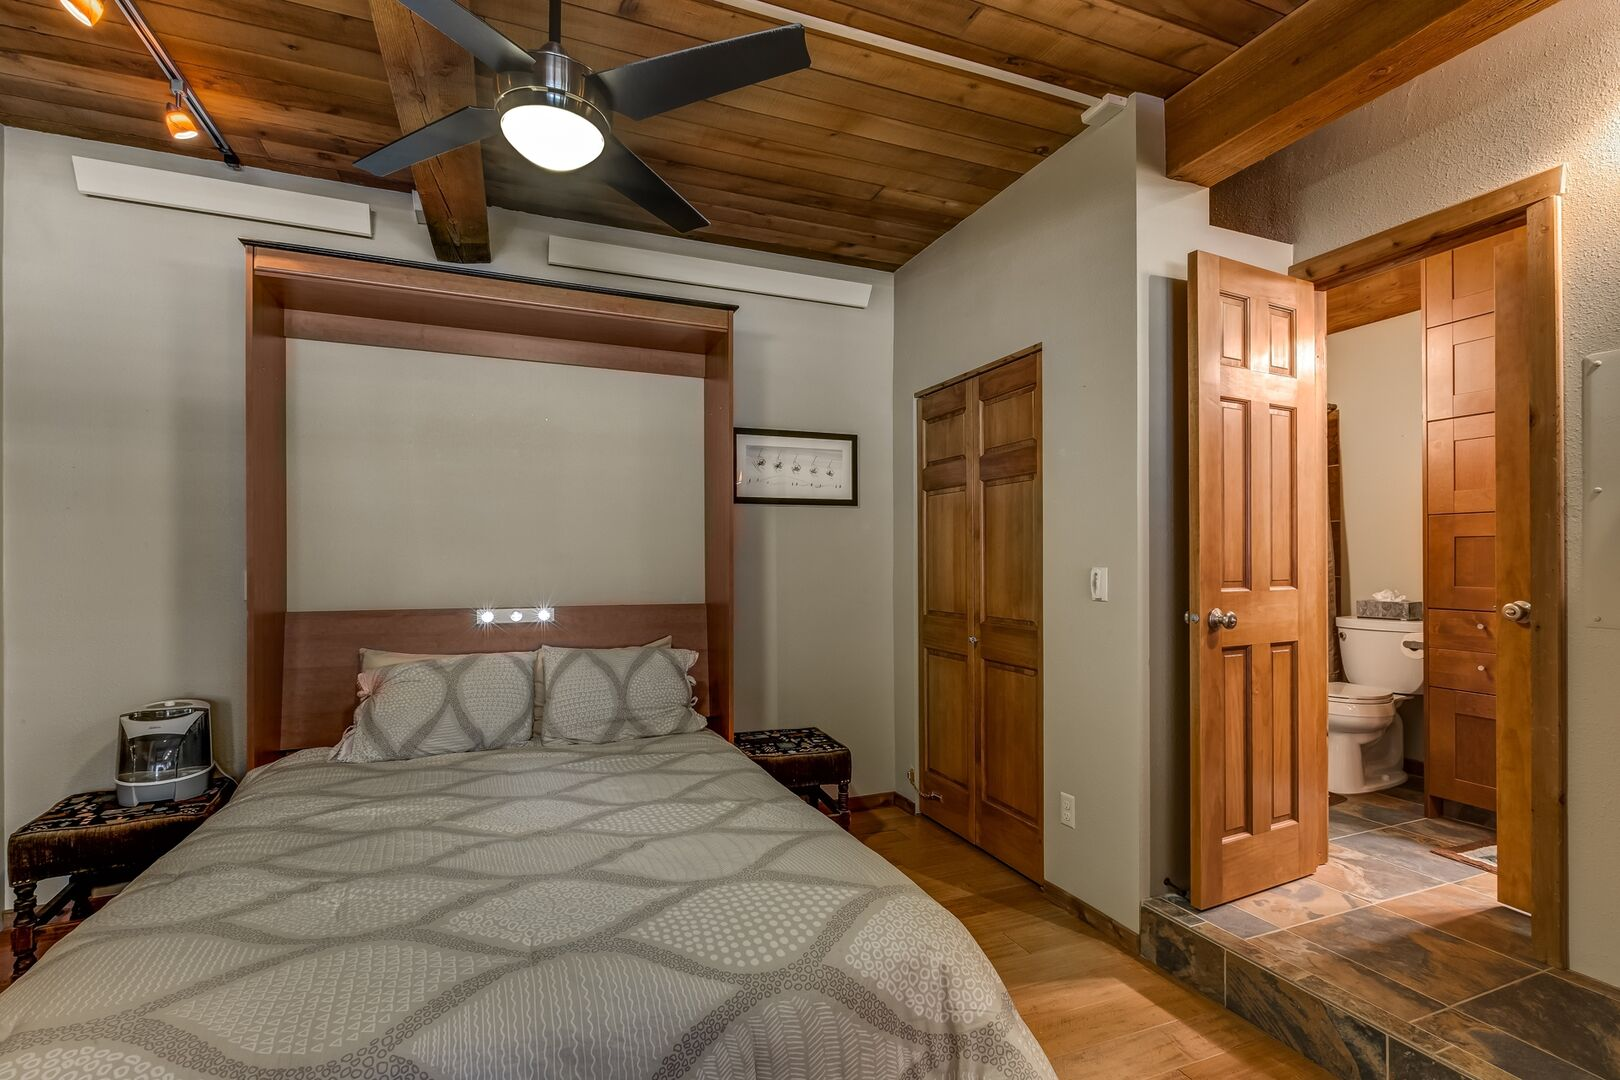 Murphy Bed  of a bedroom in this condo in Steamboat Springs  folds up into the wall.